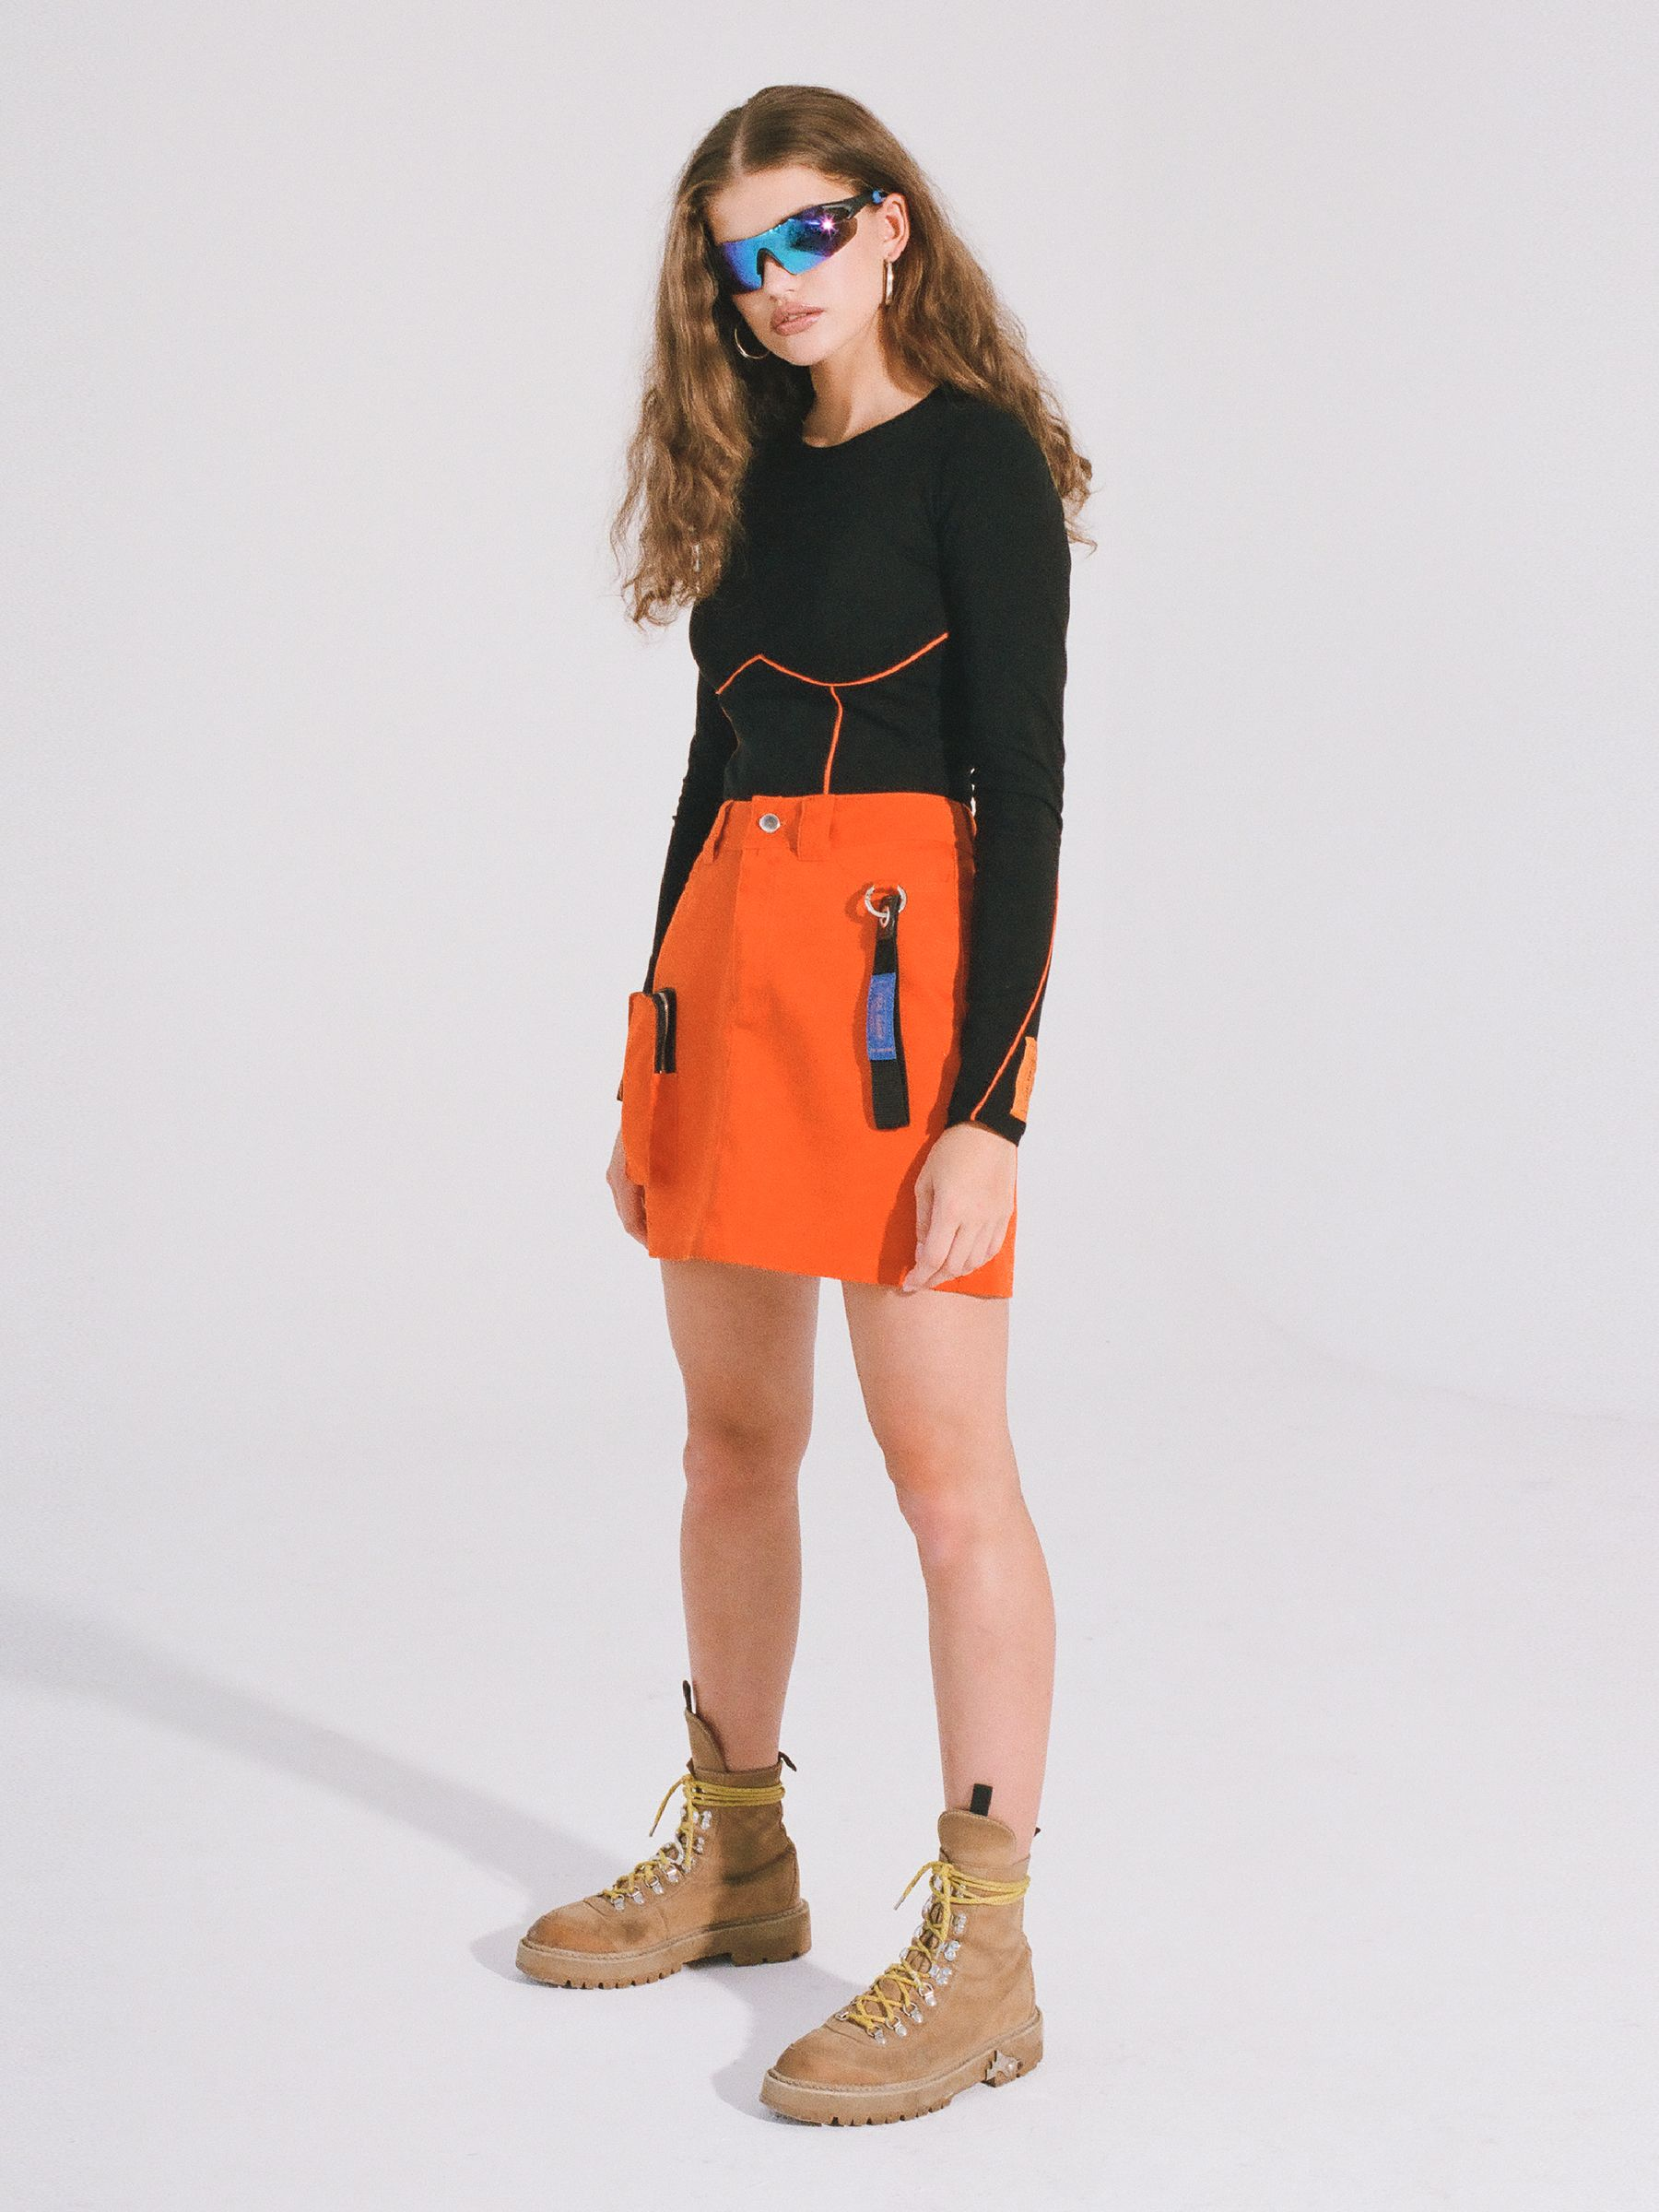 LH ORANGE MINI SKIRT